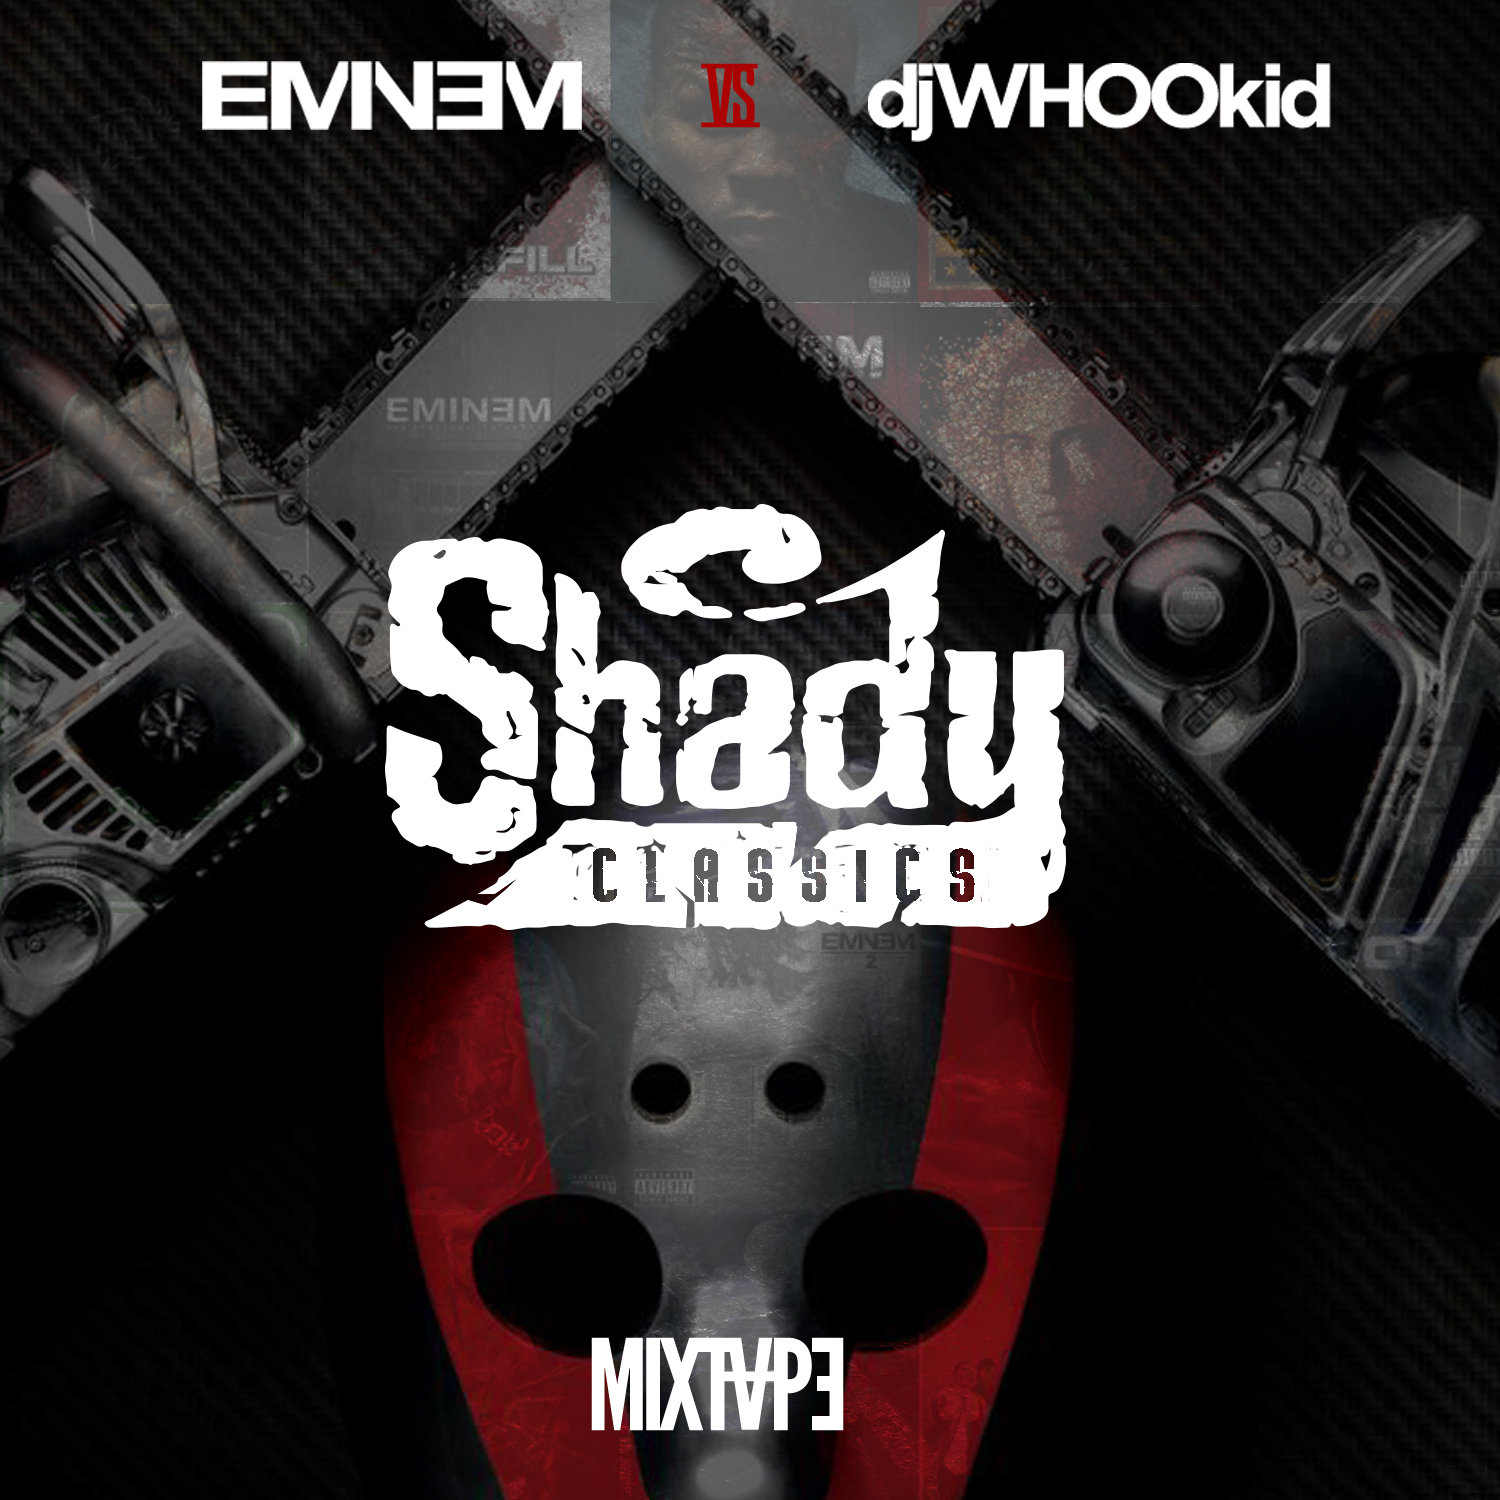 2014.11.22 - Eminem Vs. DJ Whoo Kid Shady Classics